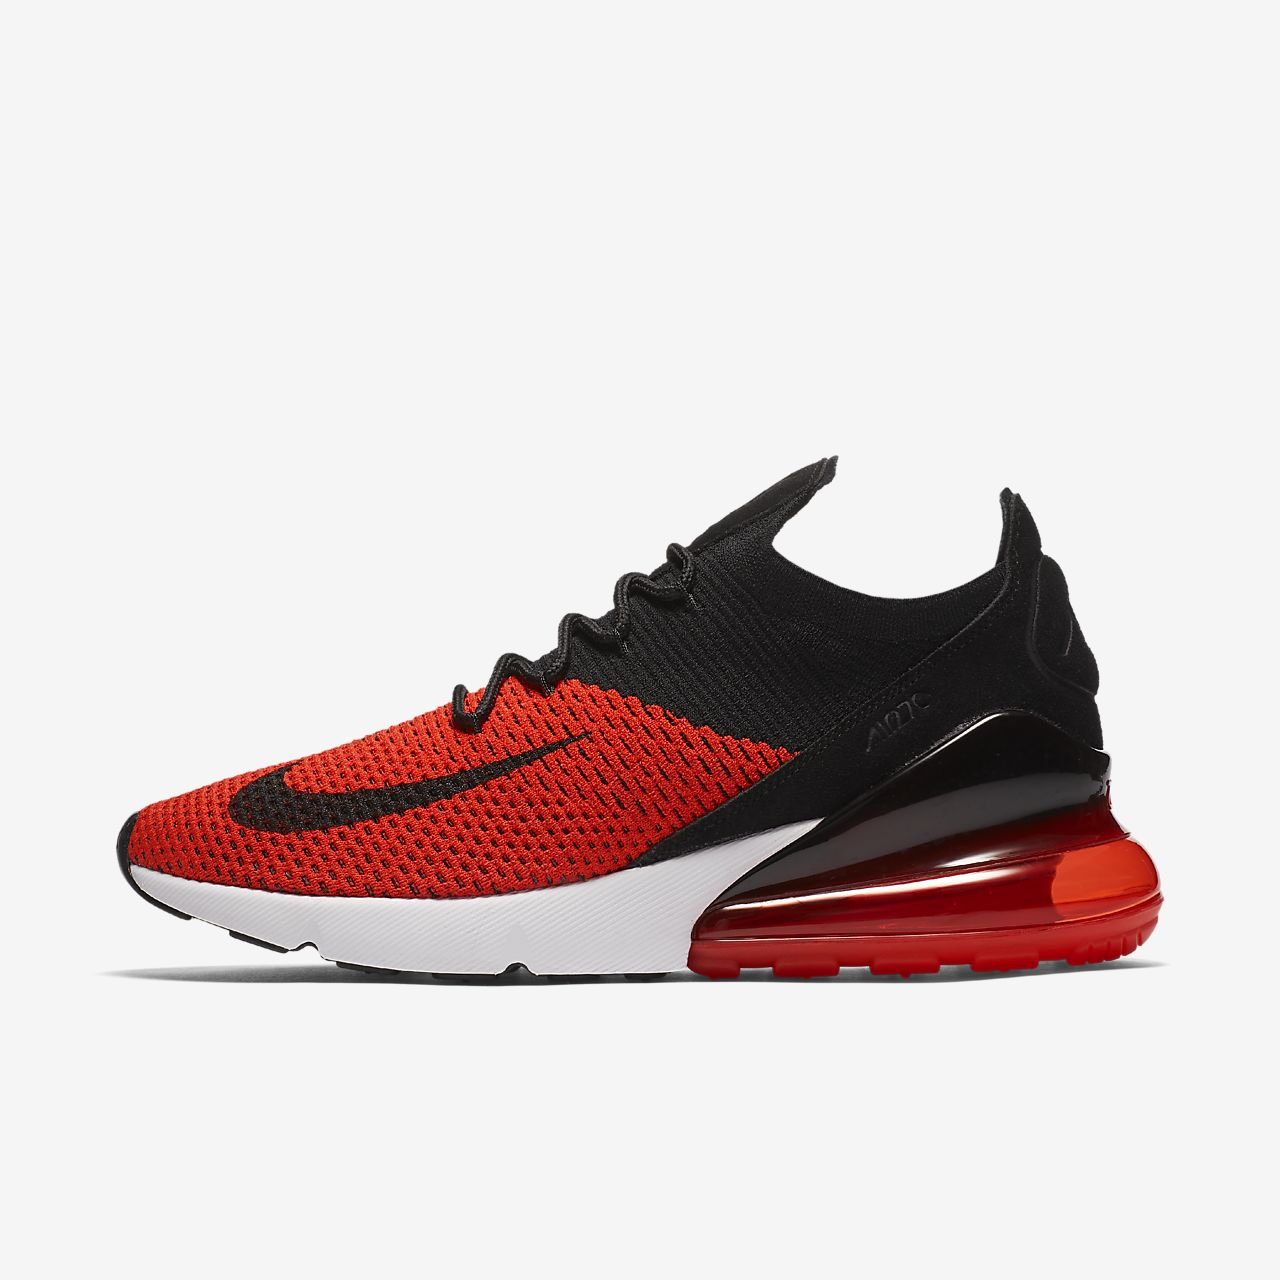 best sneakers e6a36 0d551 Nike Air Max 270 Flyknit